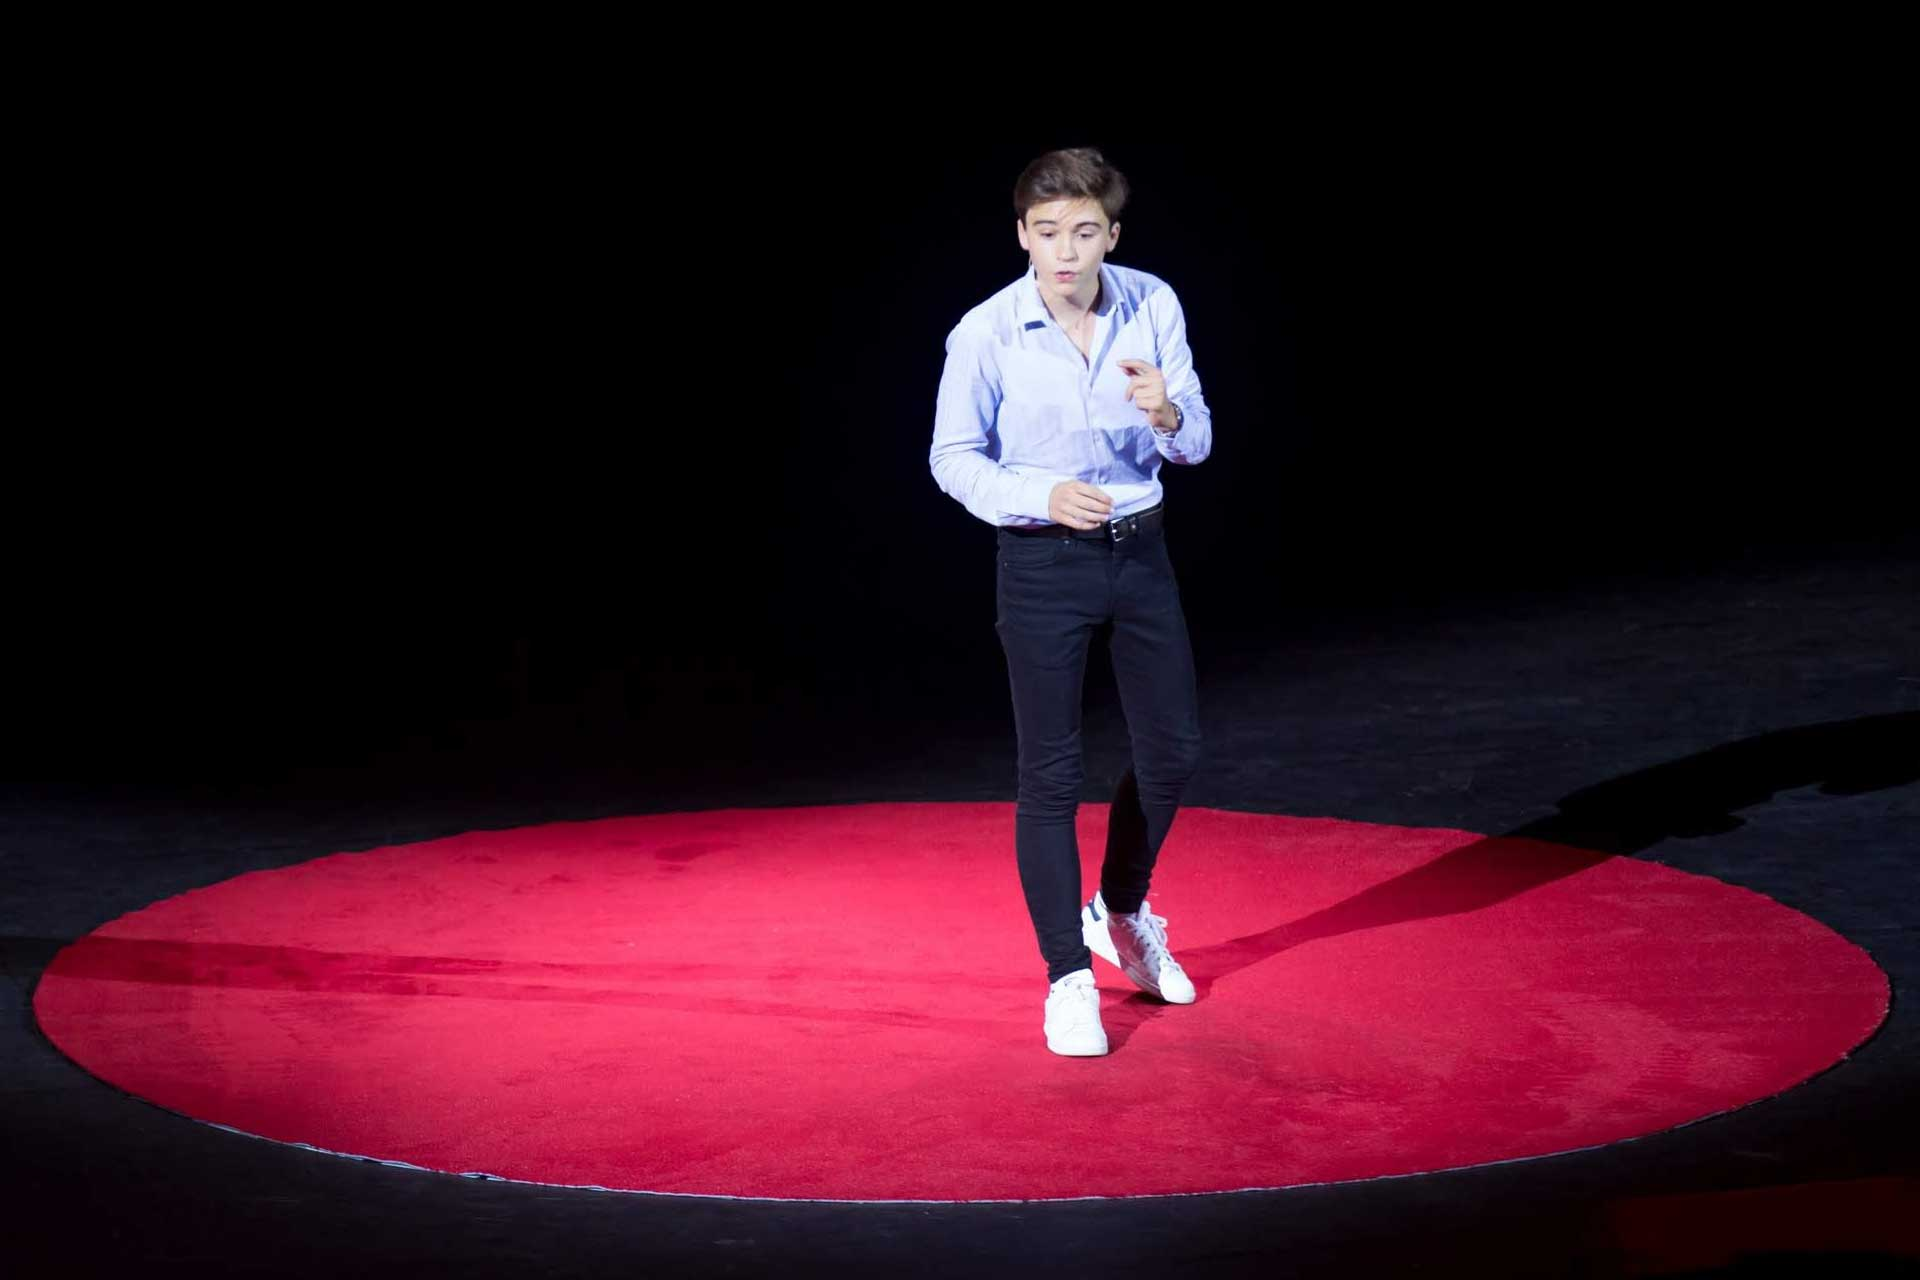 conference-TEDxParis-2016-5.jpg